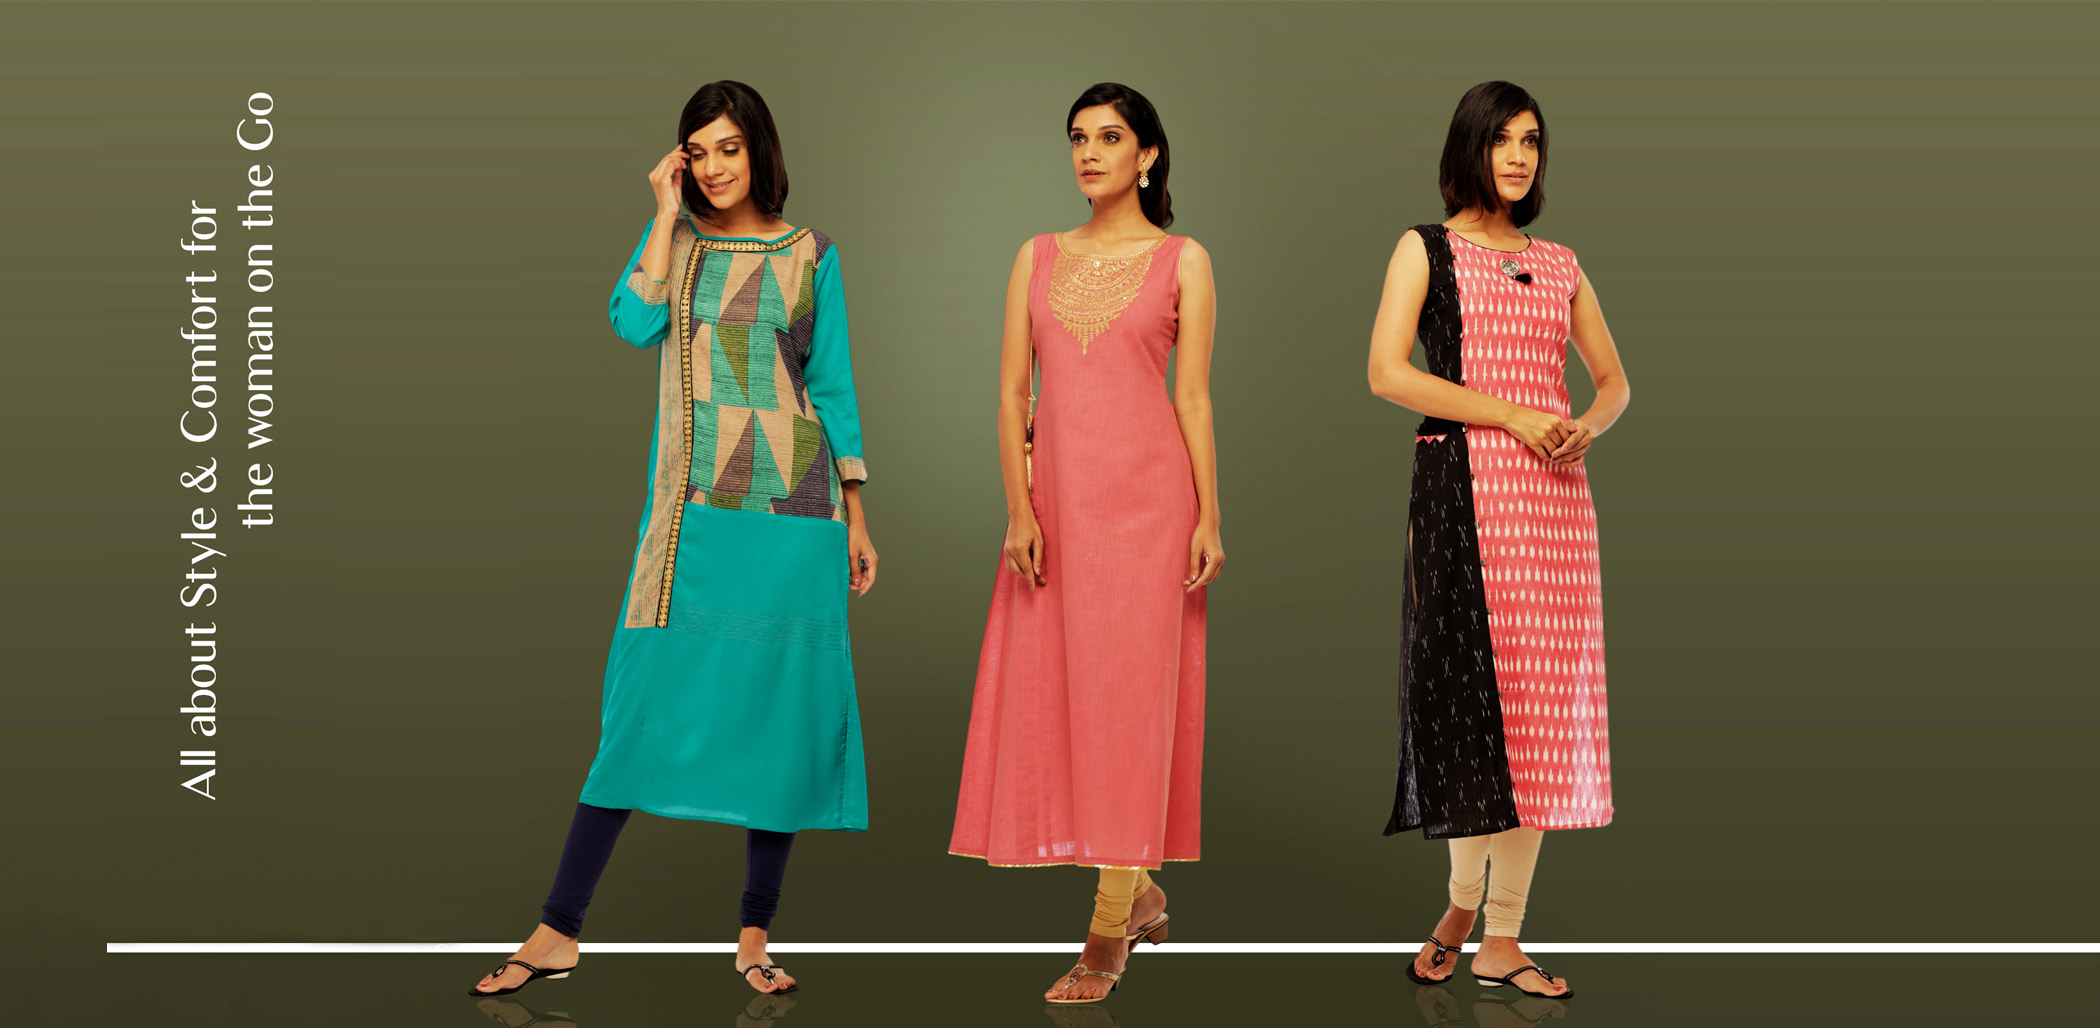 712ac0d30770e RUMA'S COLLECTION | Authentic Indian Ehtnic, Traditional & Formal ...